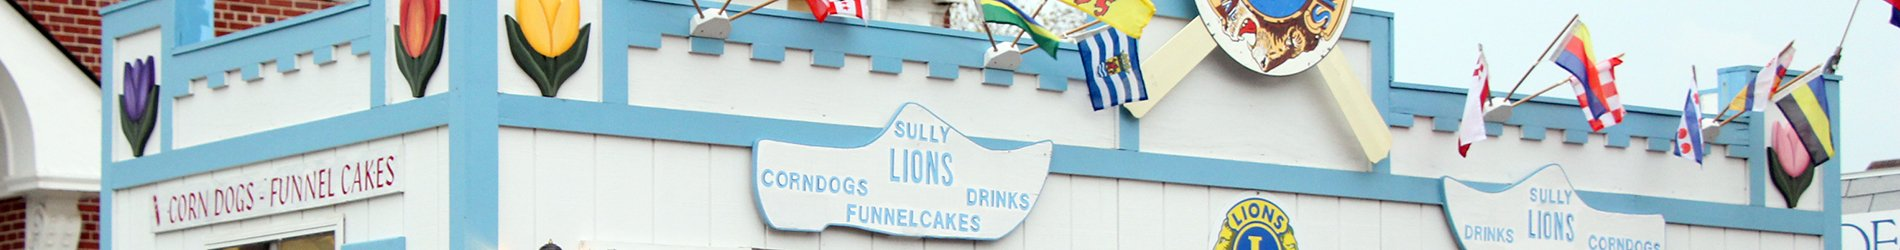 Sully Lions